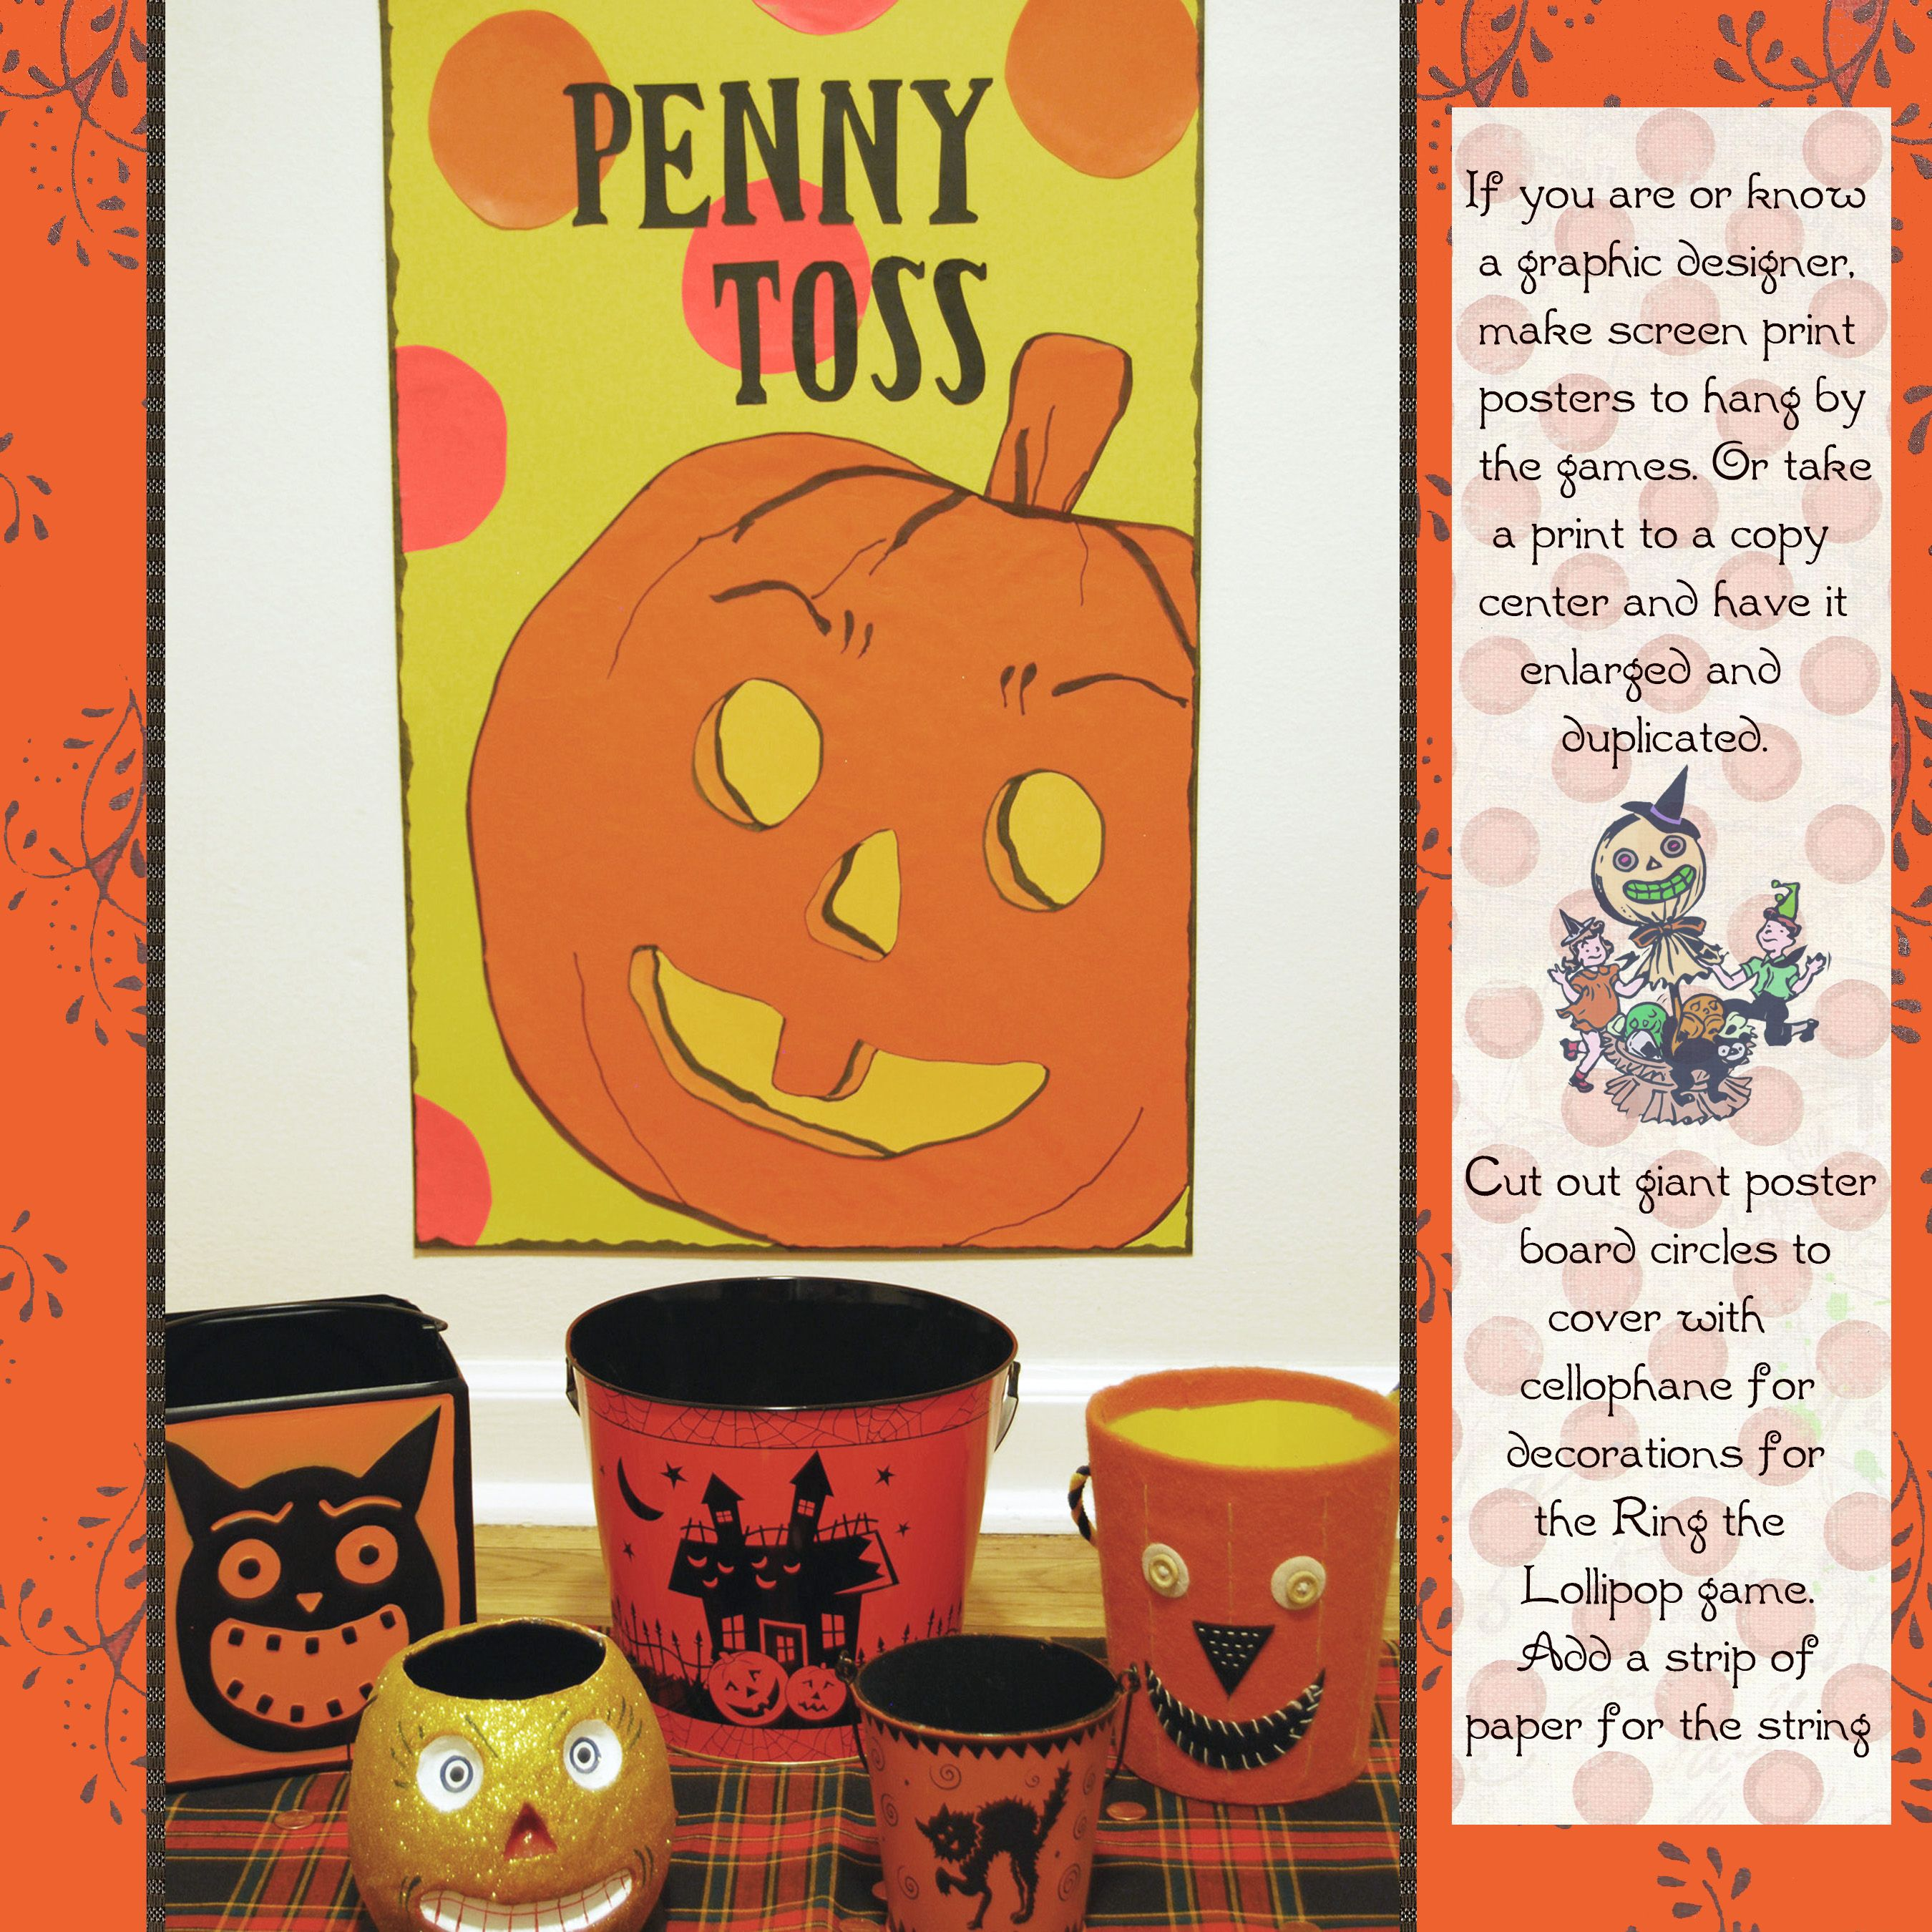 Penny toss halloween partycarnival game httpamazon carnival ideas fandeluxe Ebook collections